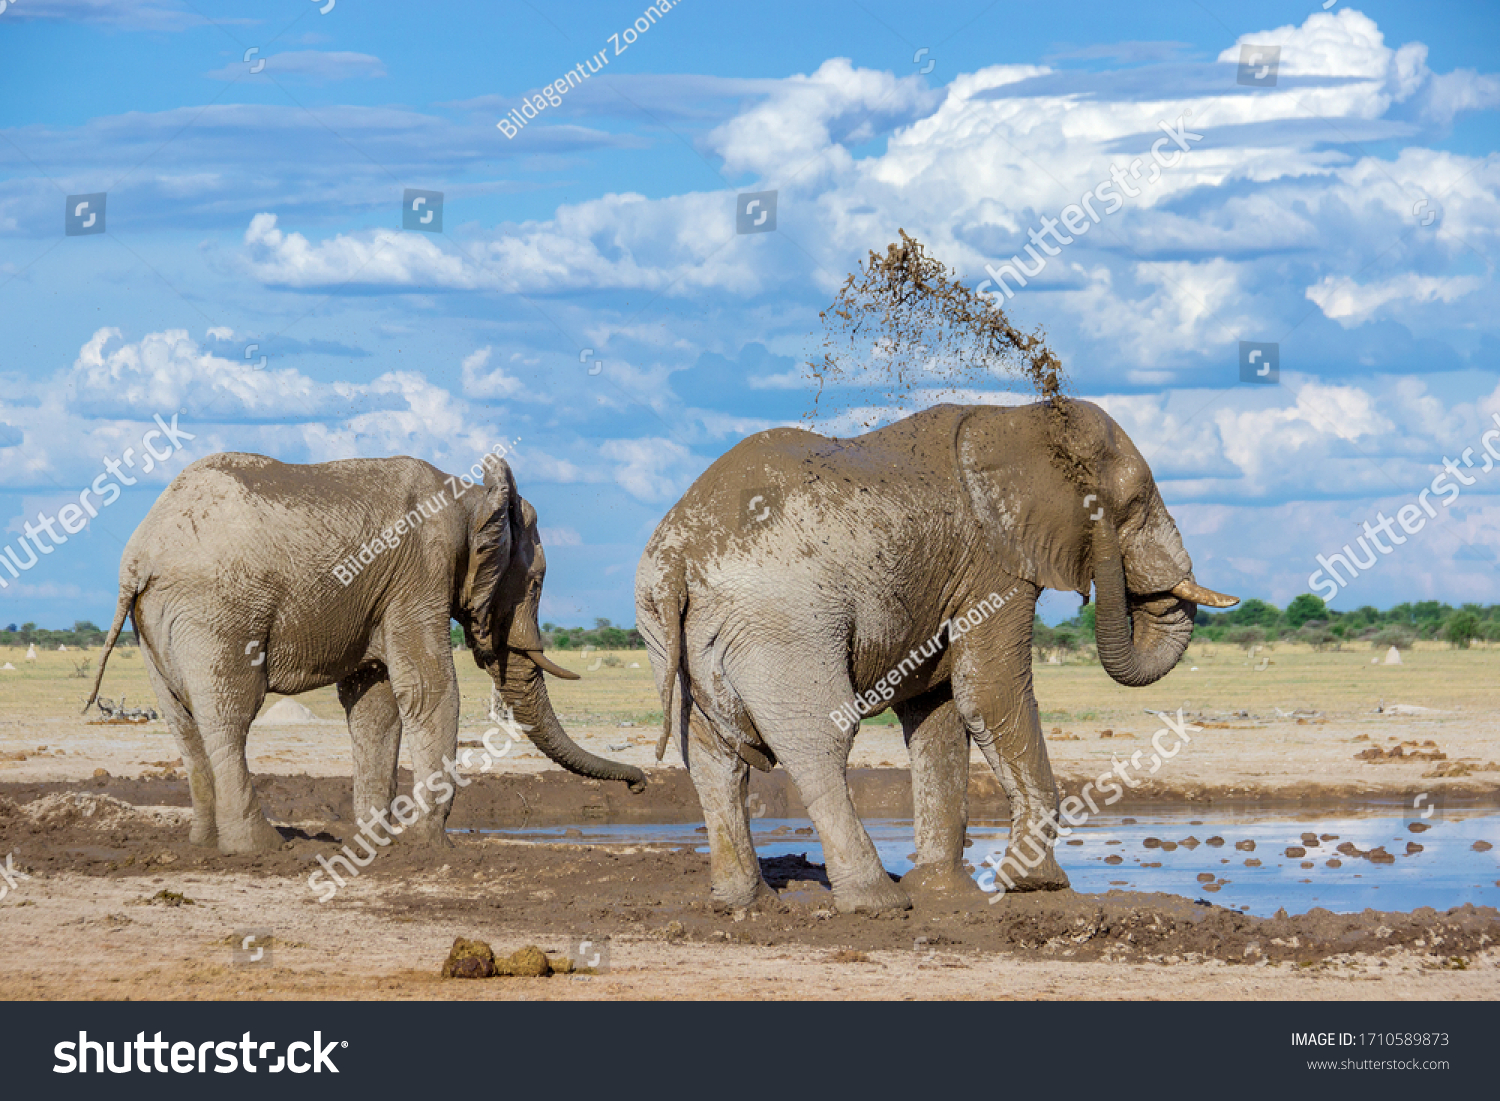 Elephant tossing mud on its back #1710589873